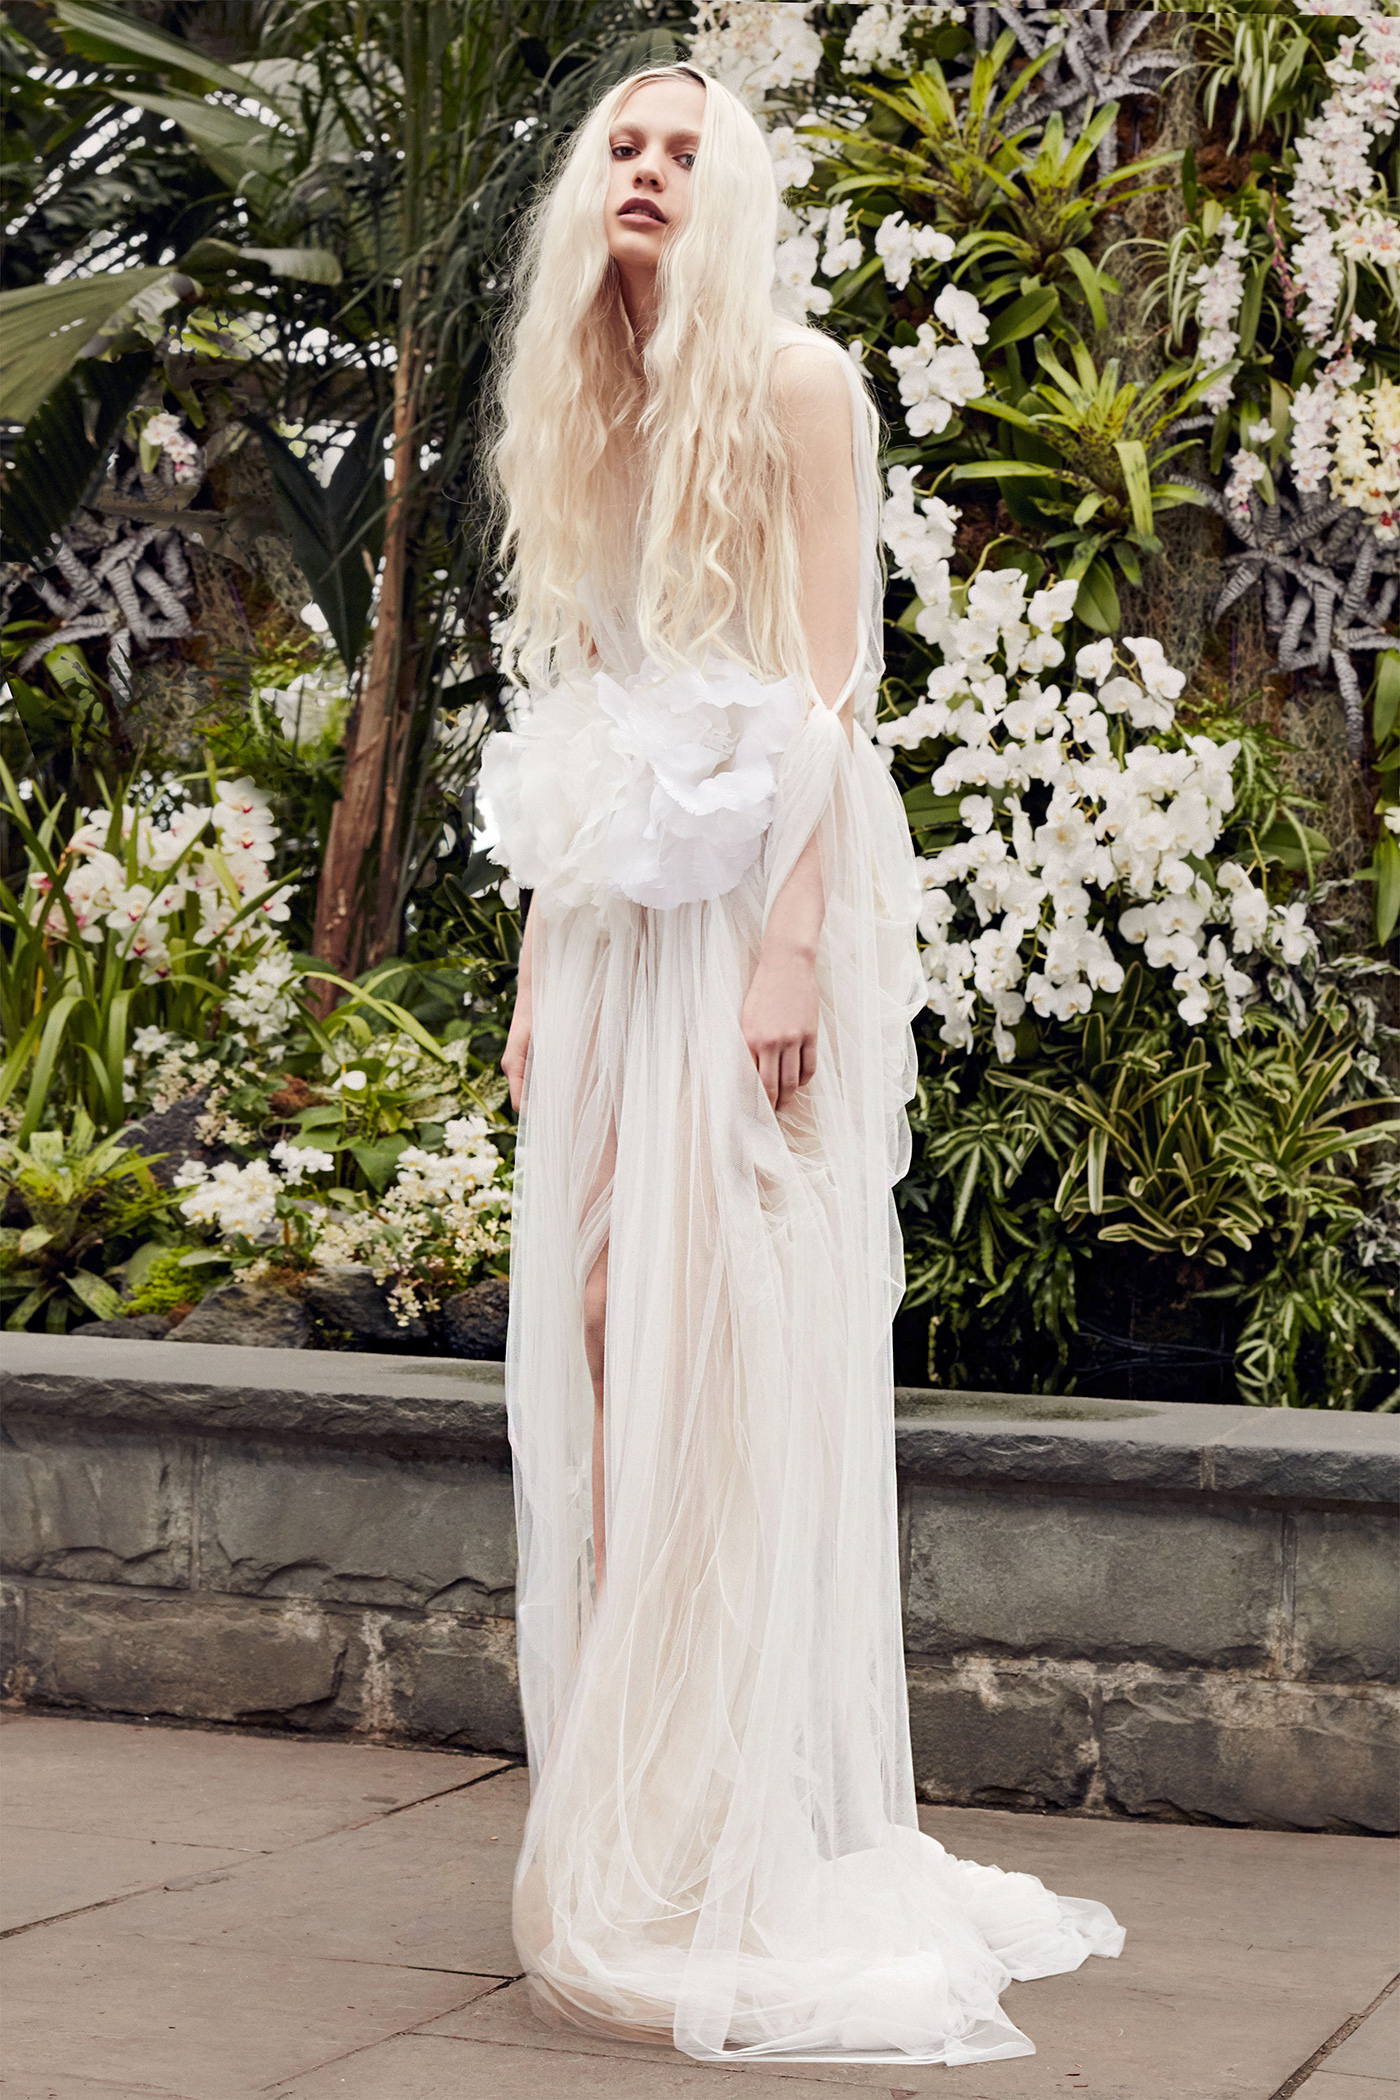 vera wang gathered floral applique wedding dress spring 2020